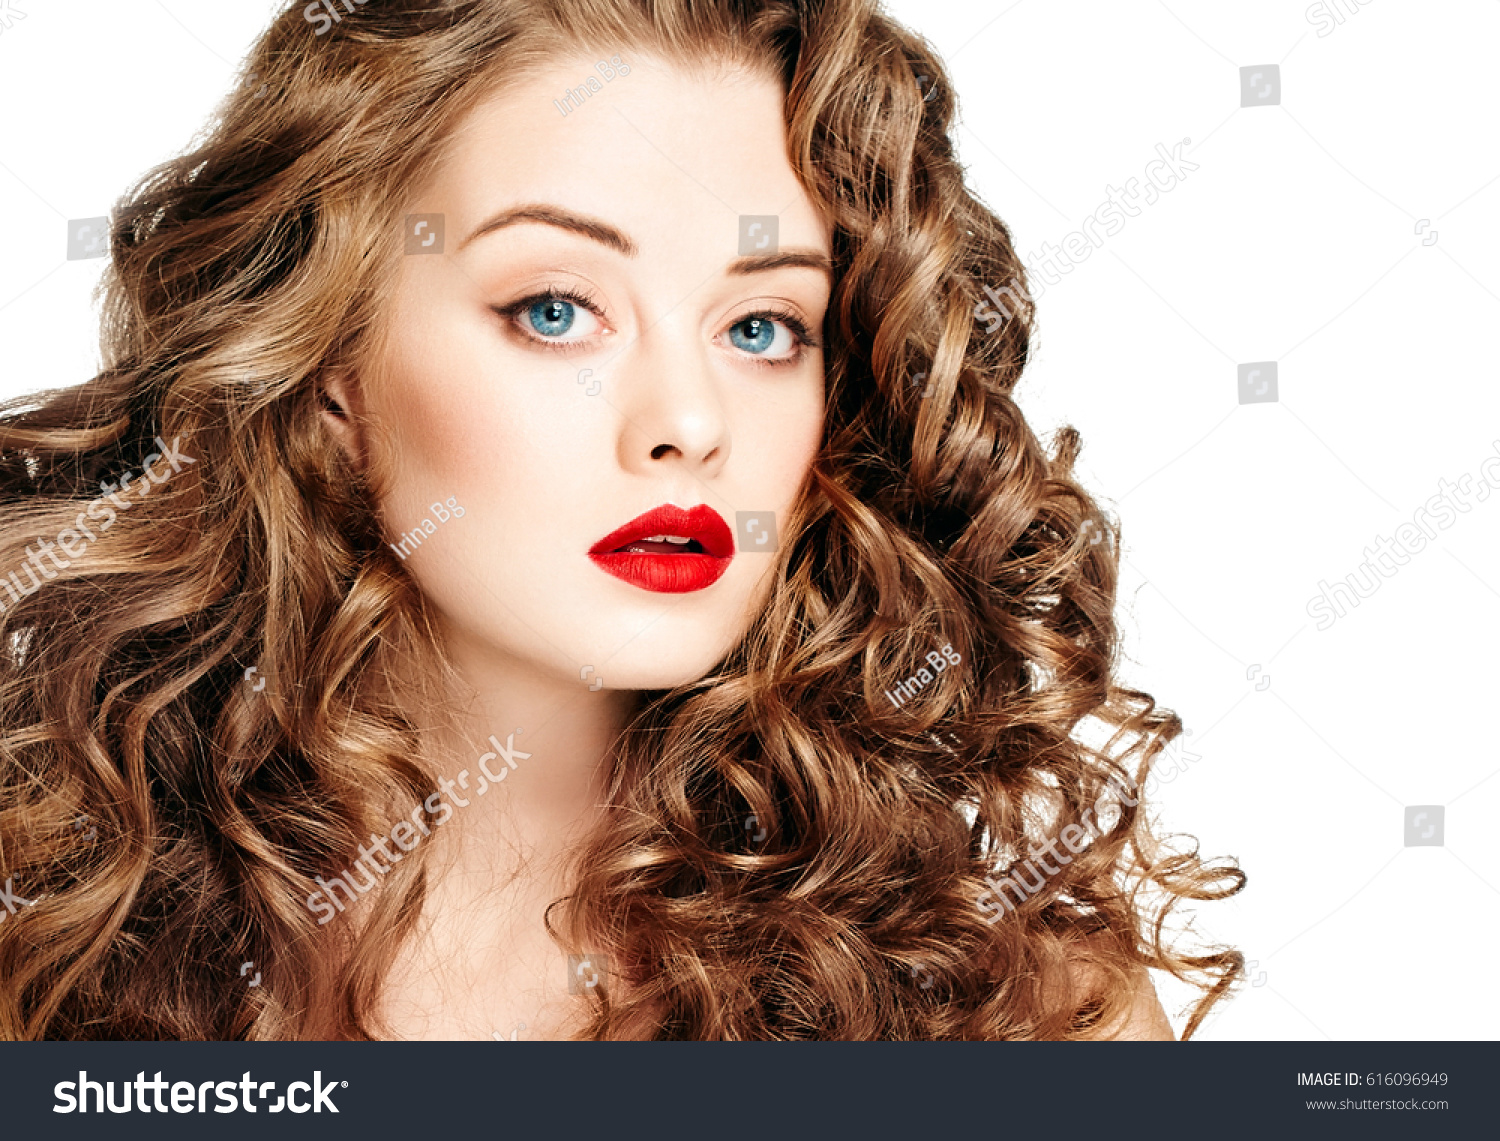 Beautiful People Curly Hair Red Lips Stock Photo Safe To Use